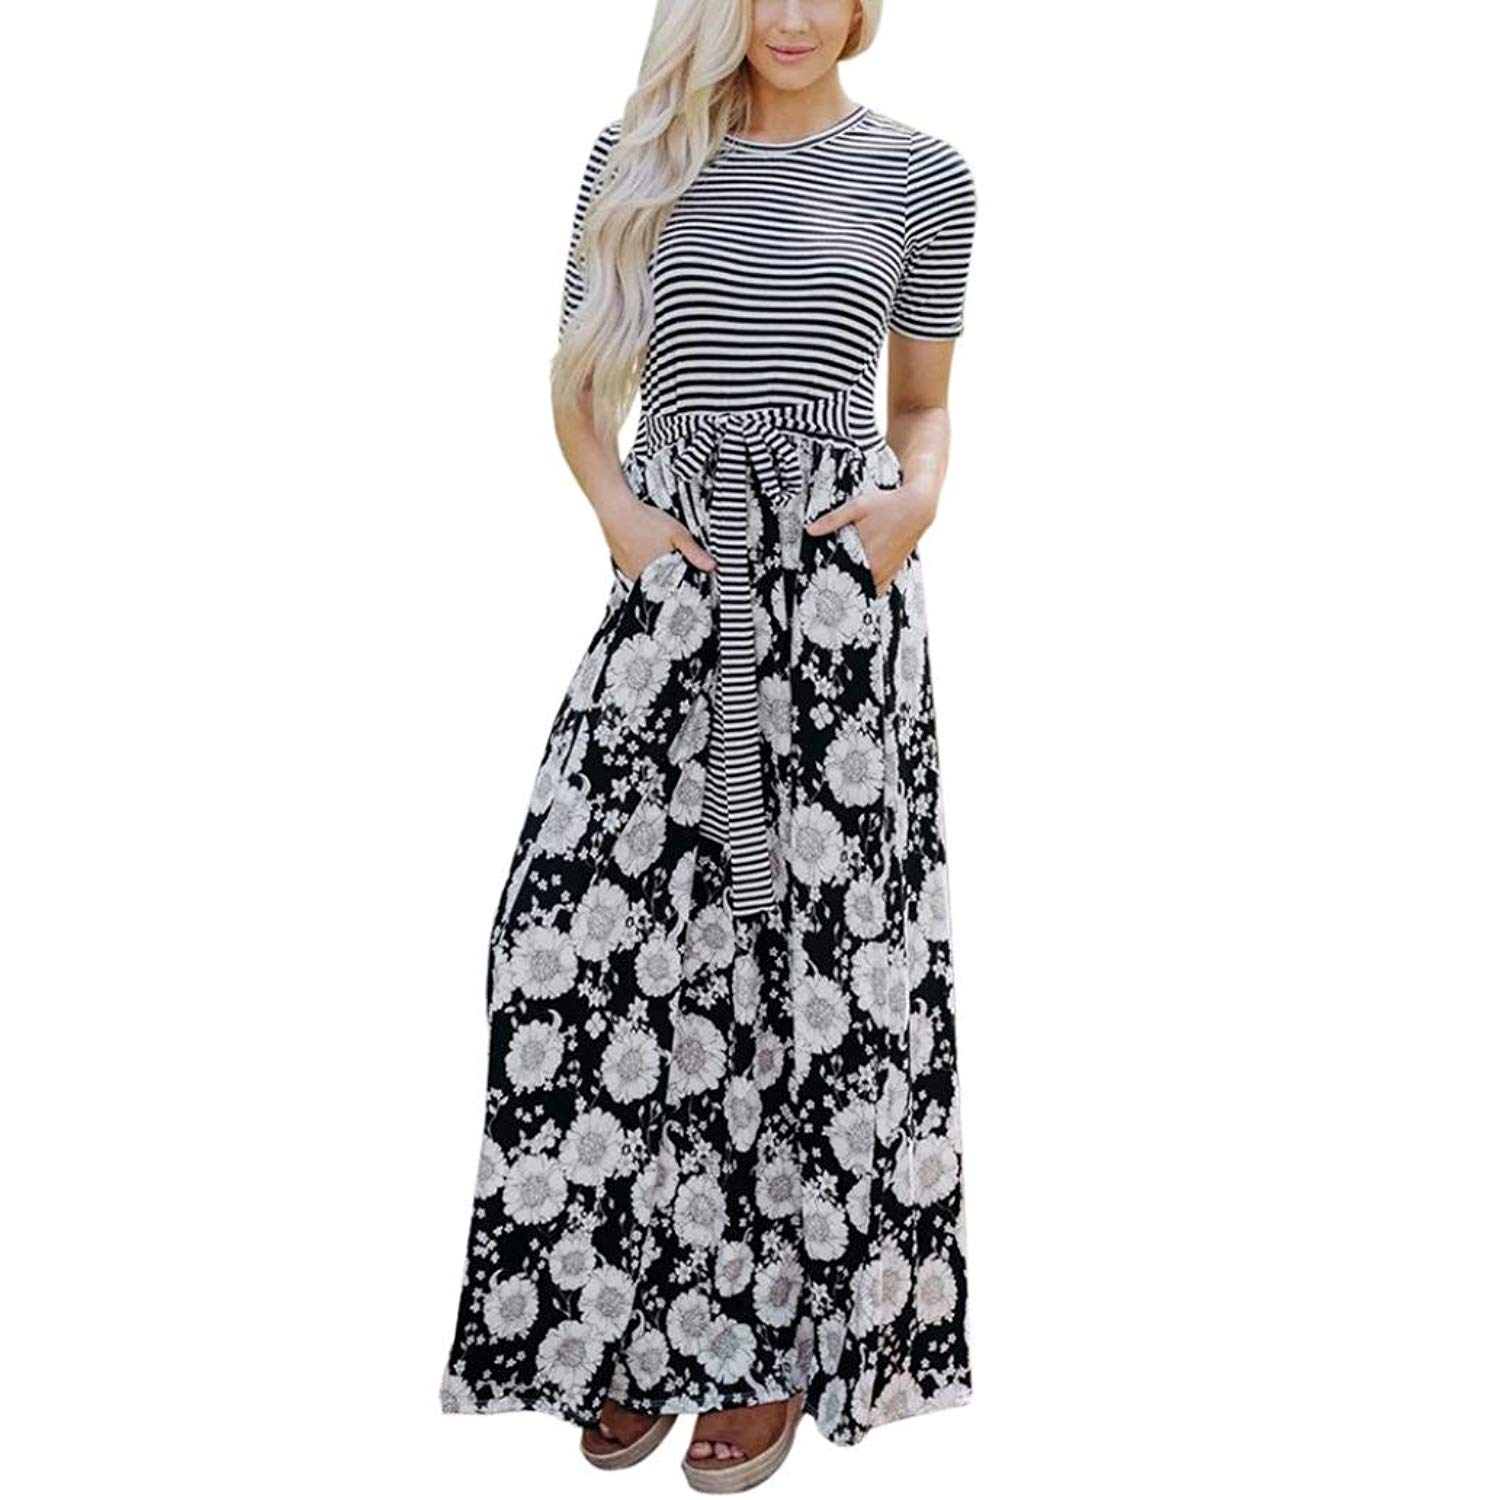 Goodtrade8® Women's Short Sleeve Loose Stripe Maxi Dresses Casual Long Dresses